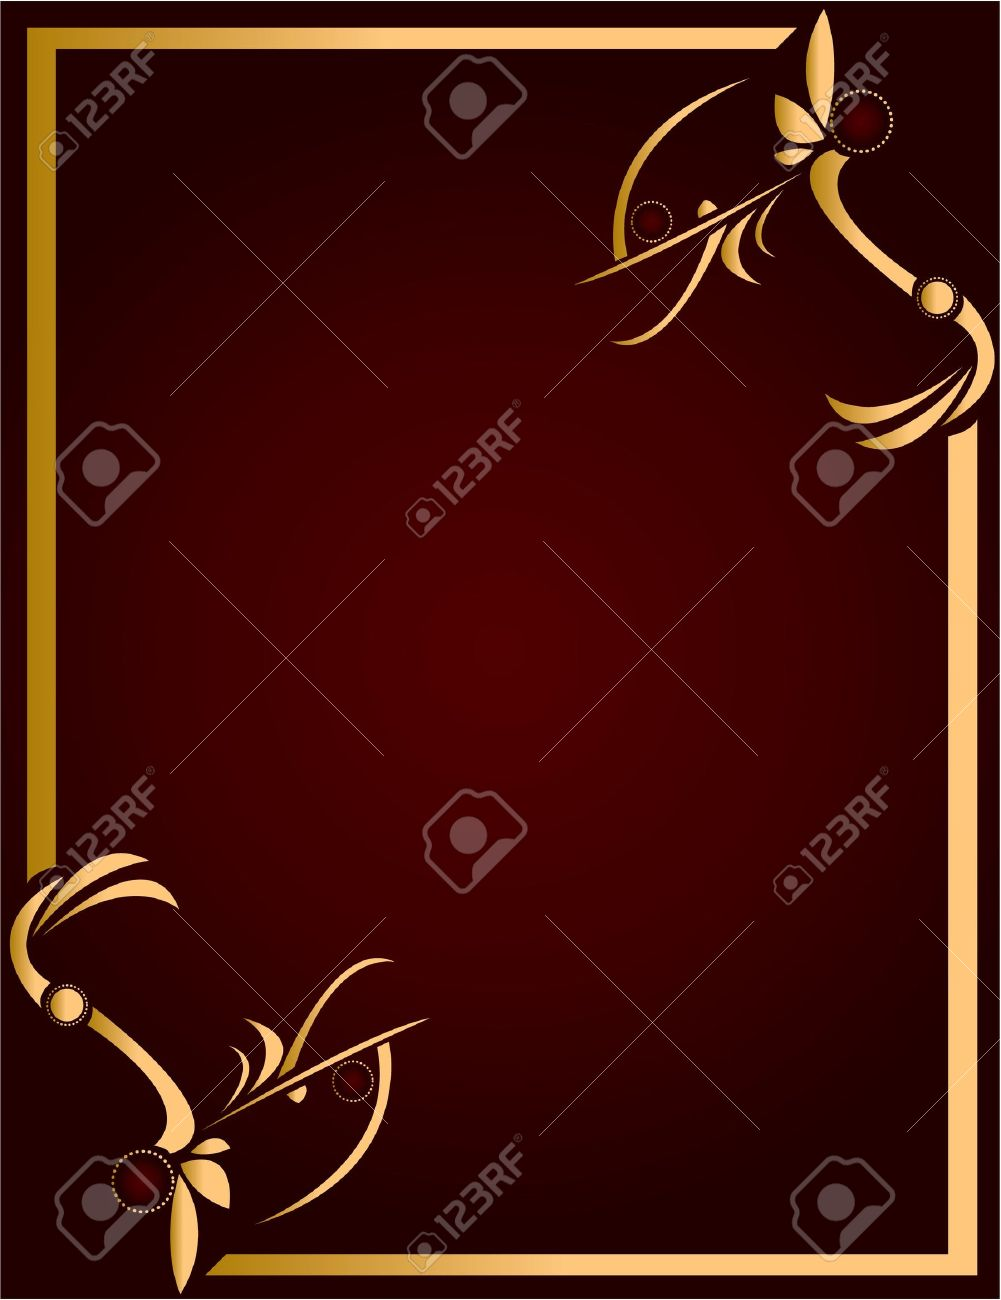 Gold abstract design on a burgundy background with space for copy Stock Photo - 5162047